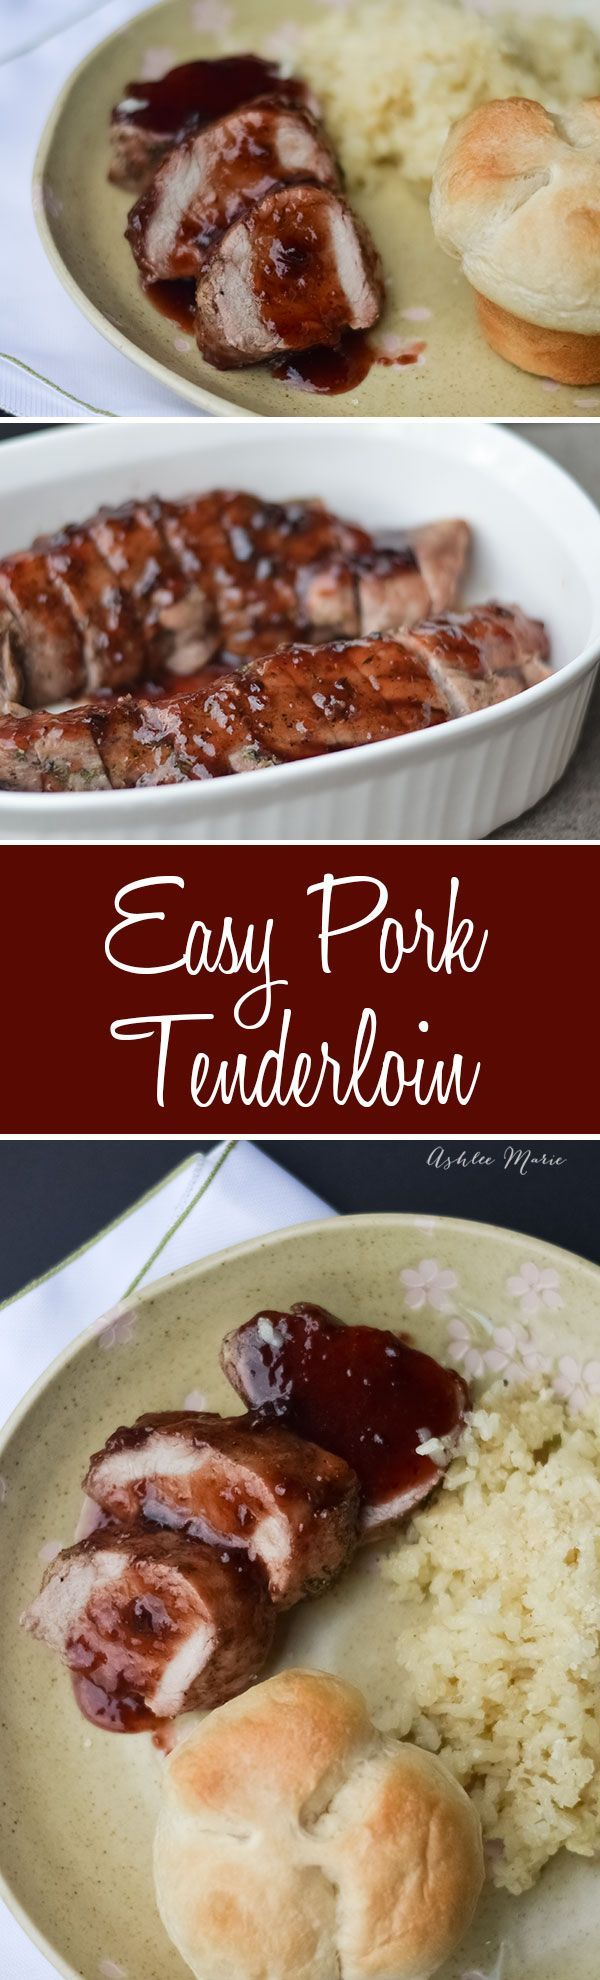 this pork tenderloin is super easy to make and very flavorful with rosemary and thyme.  Serve with a raspberry chipotle sauce and everyone is a fan